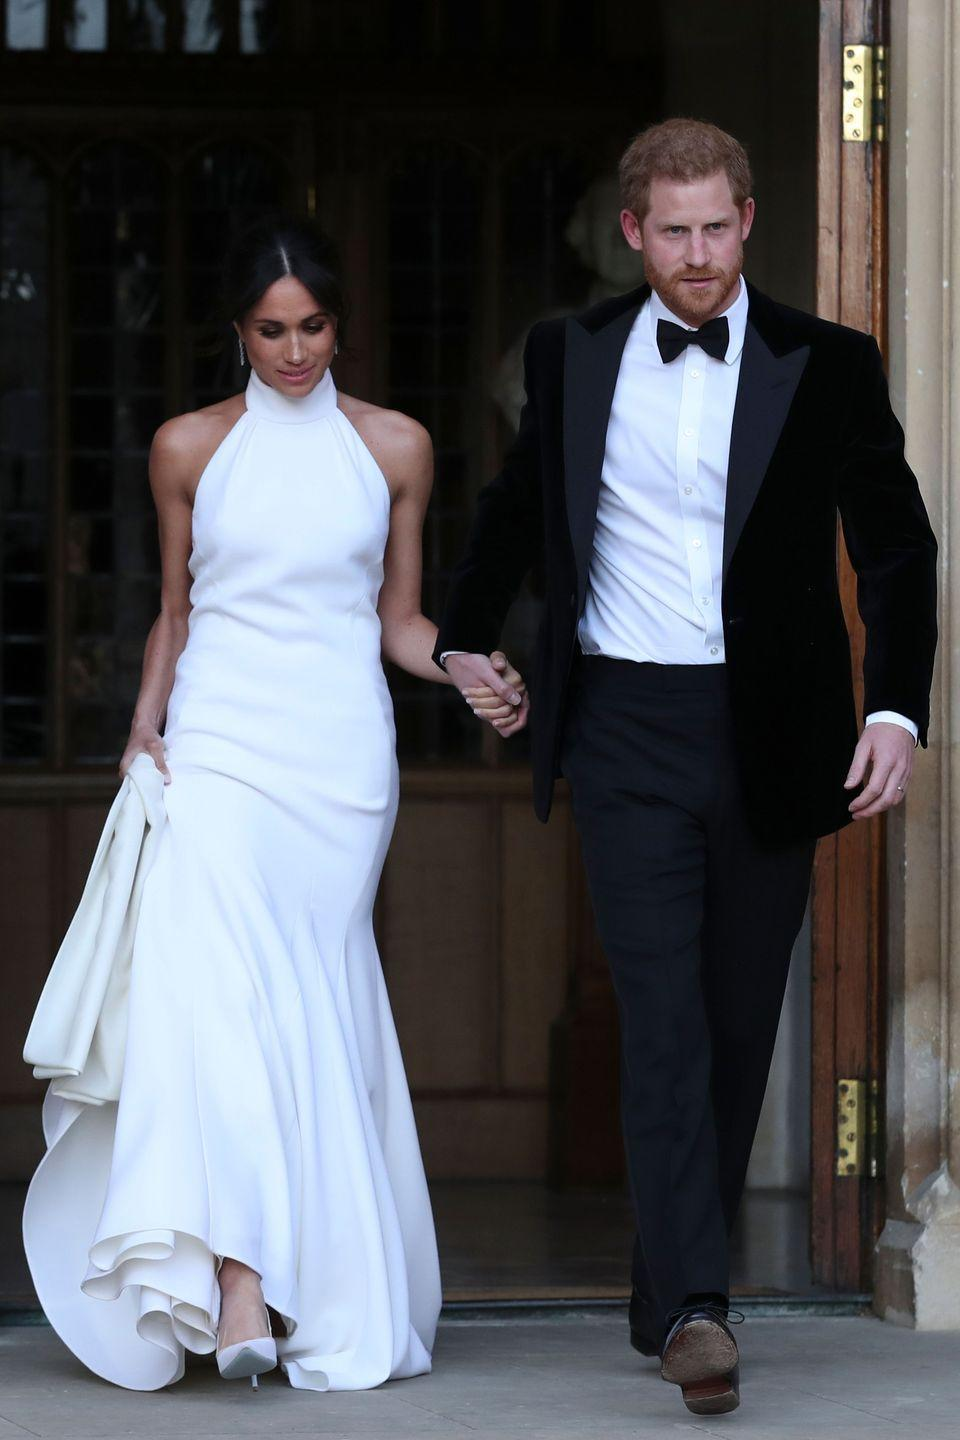 """<p>For the evening's wedding reception, Markle changed into a high-neck fishtail gown by Brit designer Stella McCartney.</p><p>The bride teamed her silk-crepe halterneck dress with <a href=""""http://www.cartier.co.uk/en-gb/collections/jewelry/collections/reflection-de-cartier/earrings/h8000215-age-d_or-de-cartier-earrings.html"""" rel=""""nofollow noopener"""" target=""""_blank"""" data-ylk=""""slk:Reflection De Cartier"""" class=""""link rapid-noclick-resp"""">Reflection De Cartier</a> diamond and white gold earrings, white court shoes and a chic chignon. </p>"""